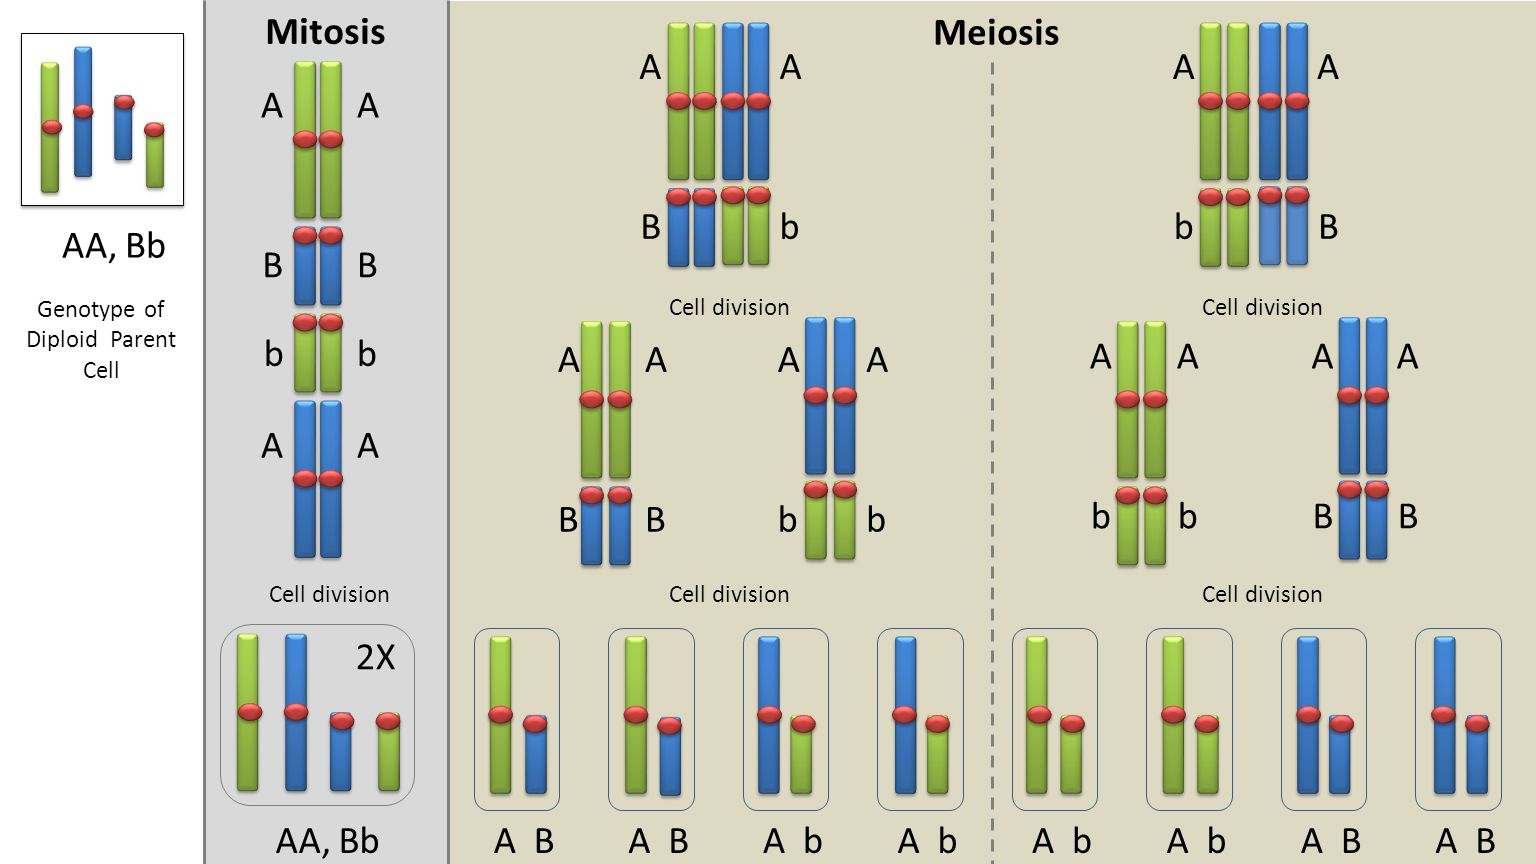 Meiosis Mitosis 2X Cell division AA, BbA BA b A B Genotype of Diploid Parent Cell AA, Bb AA BB bb AA A B A b A B A B A b A b A b A B A b A B A B A b